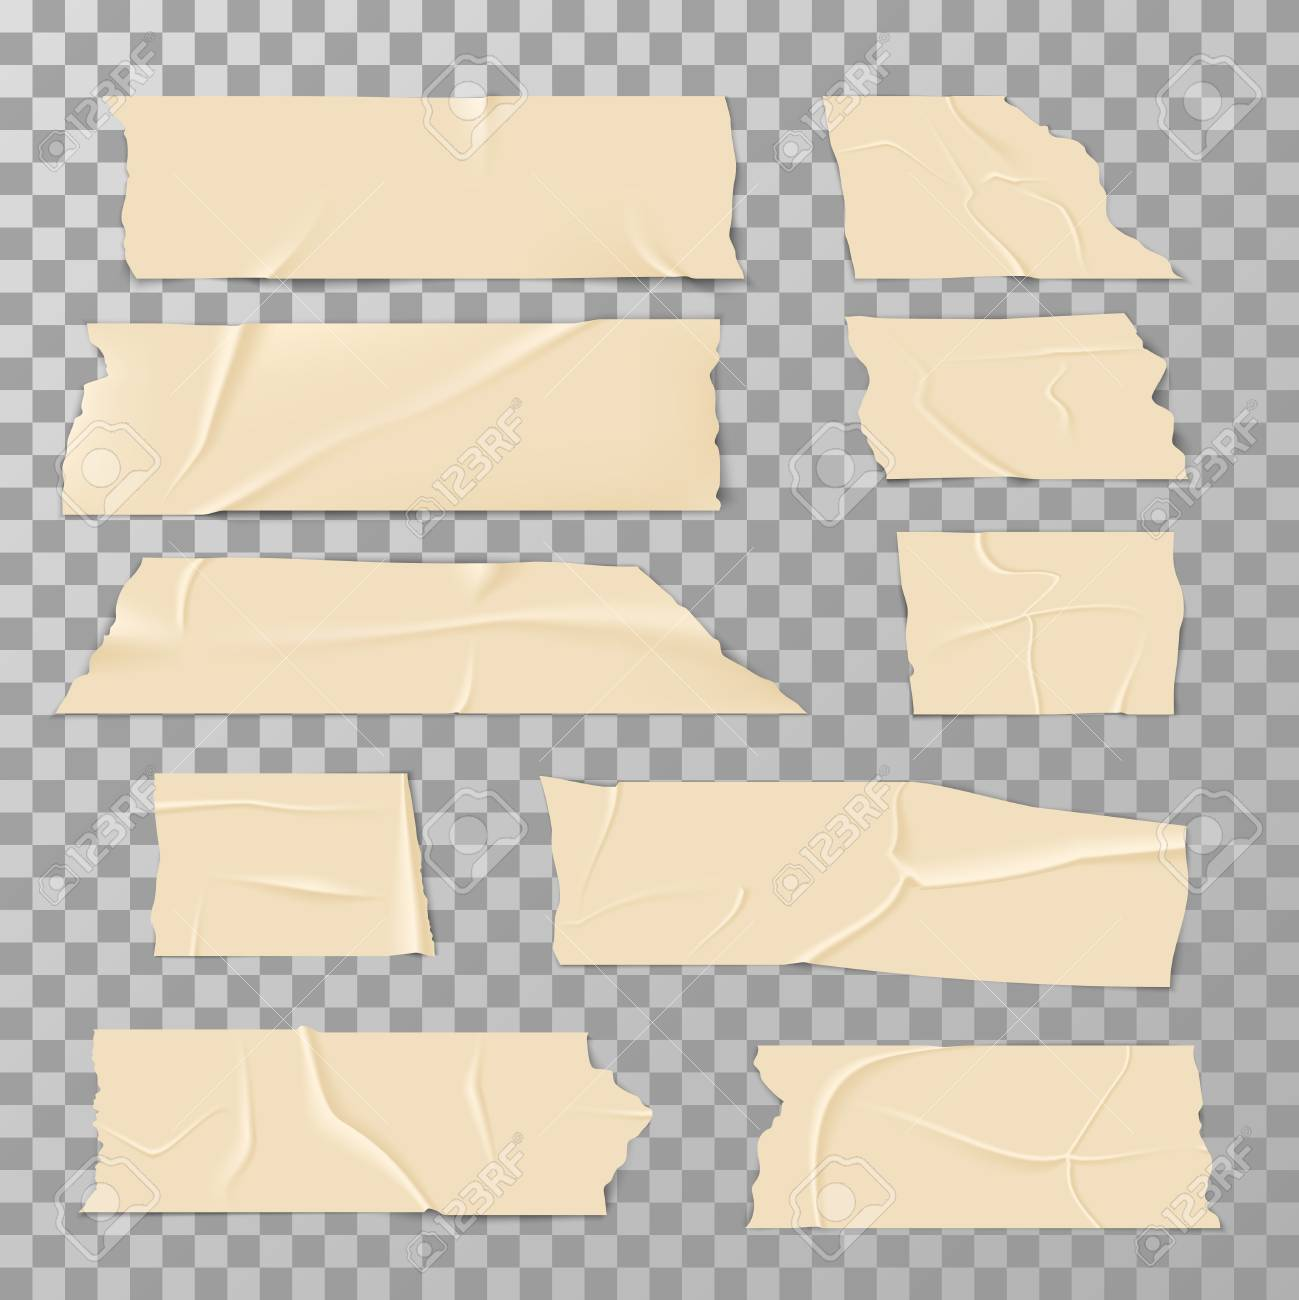 Adhesive Sticky Tape Isolated On Transparent Background Vector